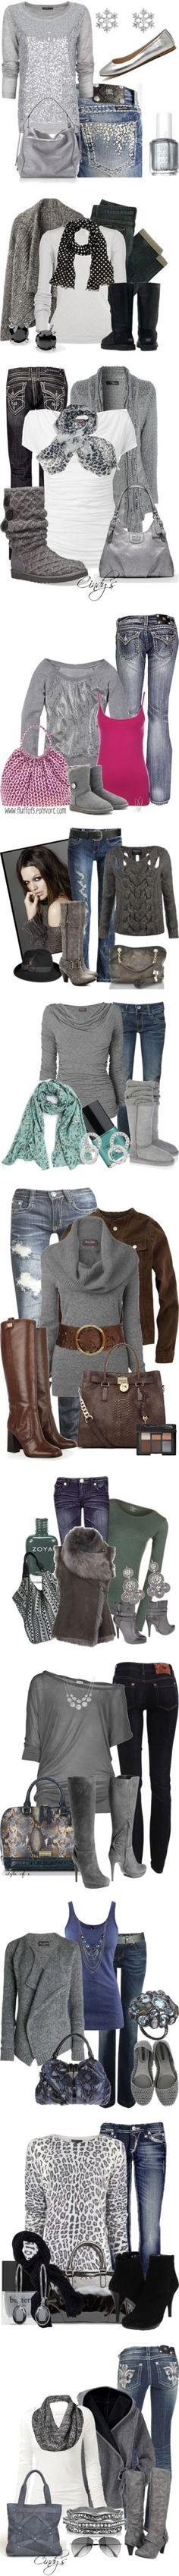 For the love of grey! Must have at least one of these stylish put togethers :-)